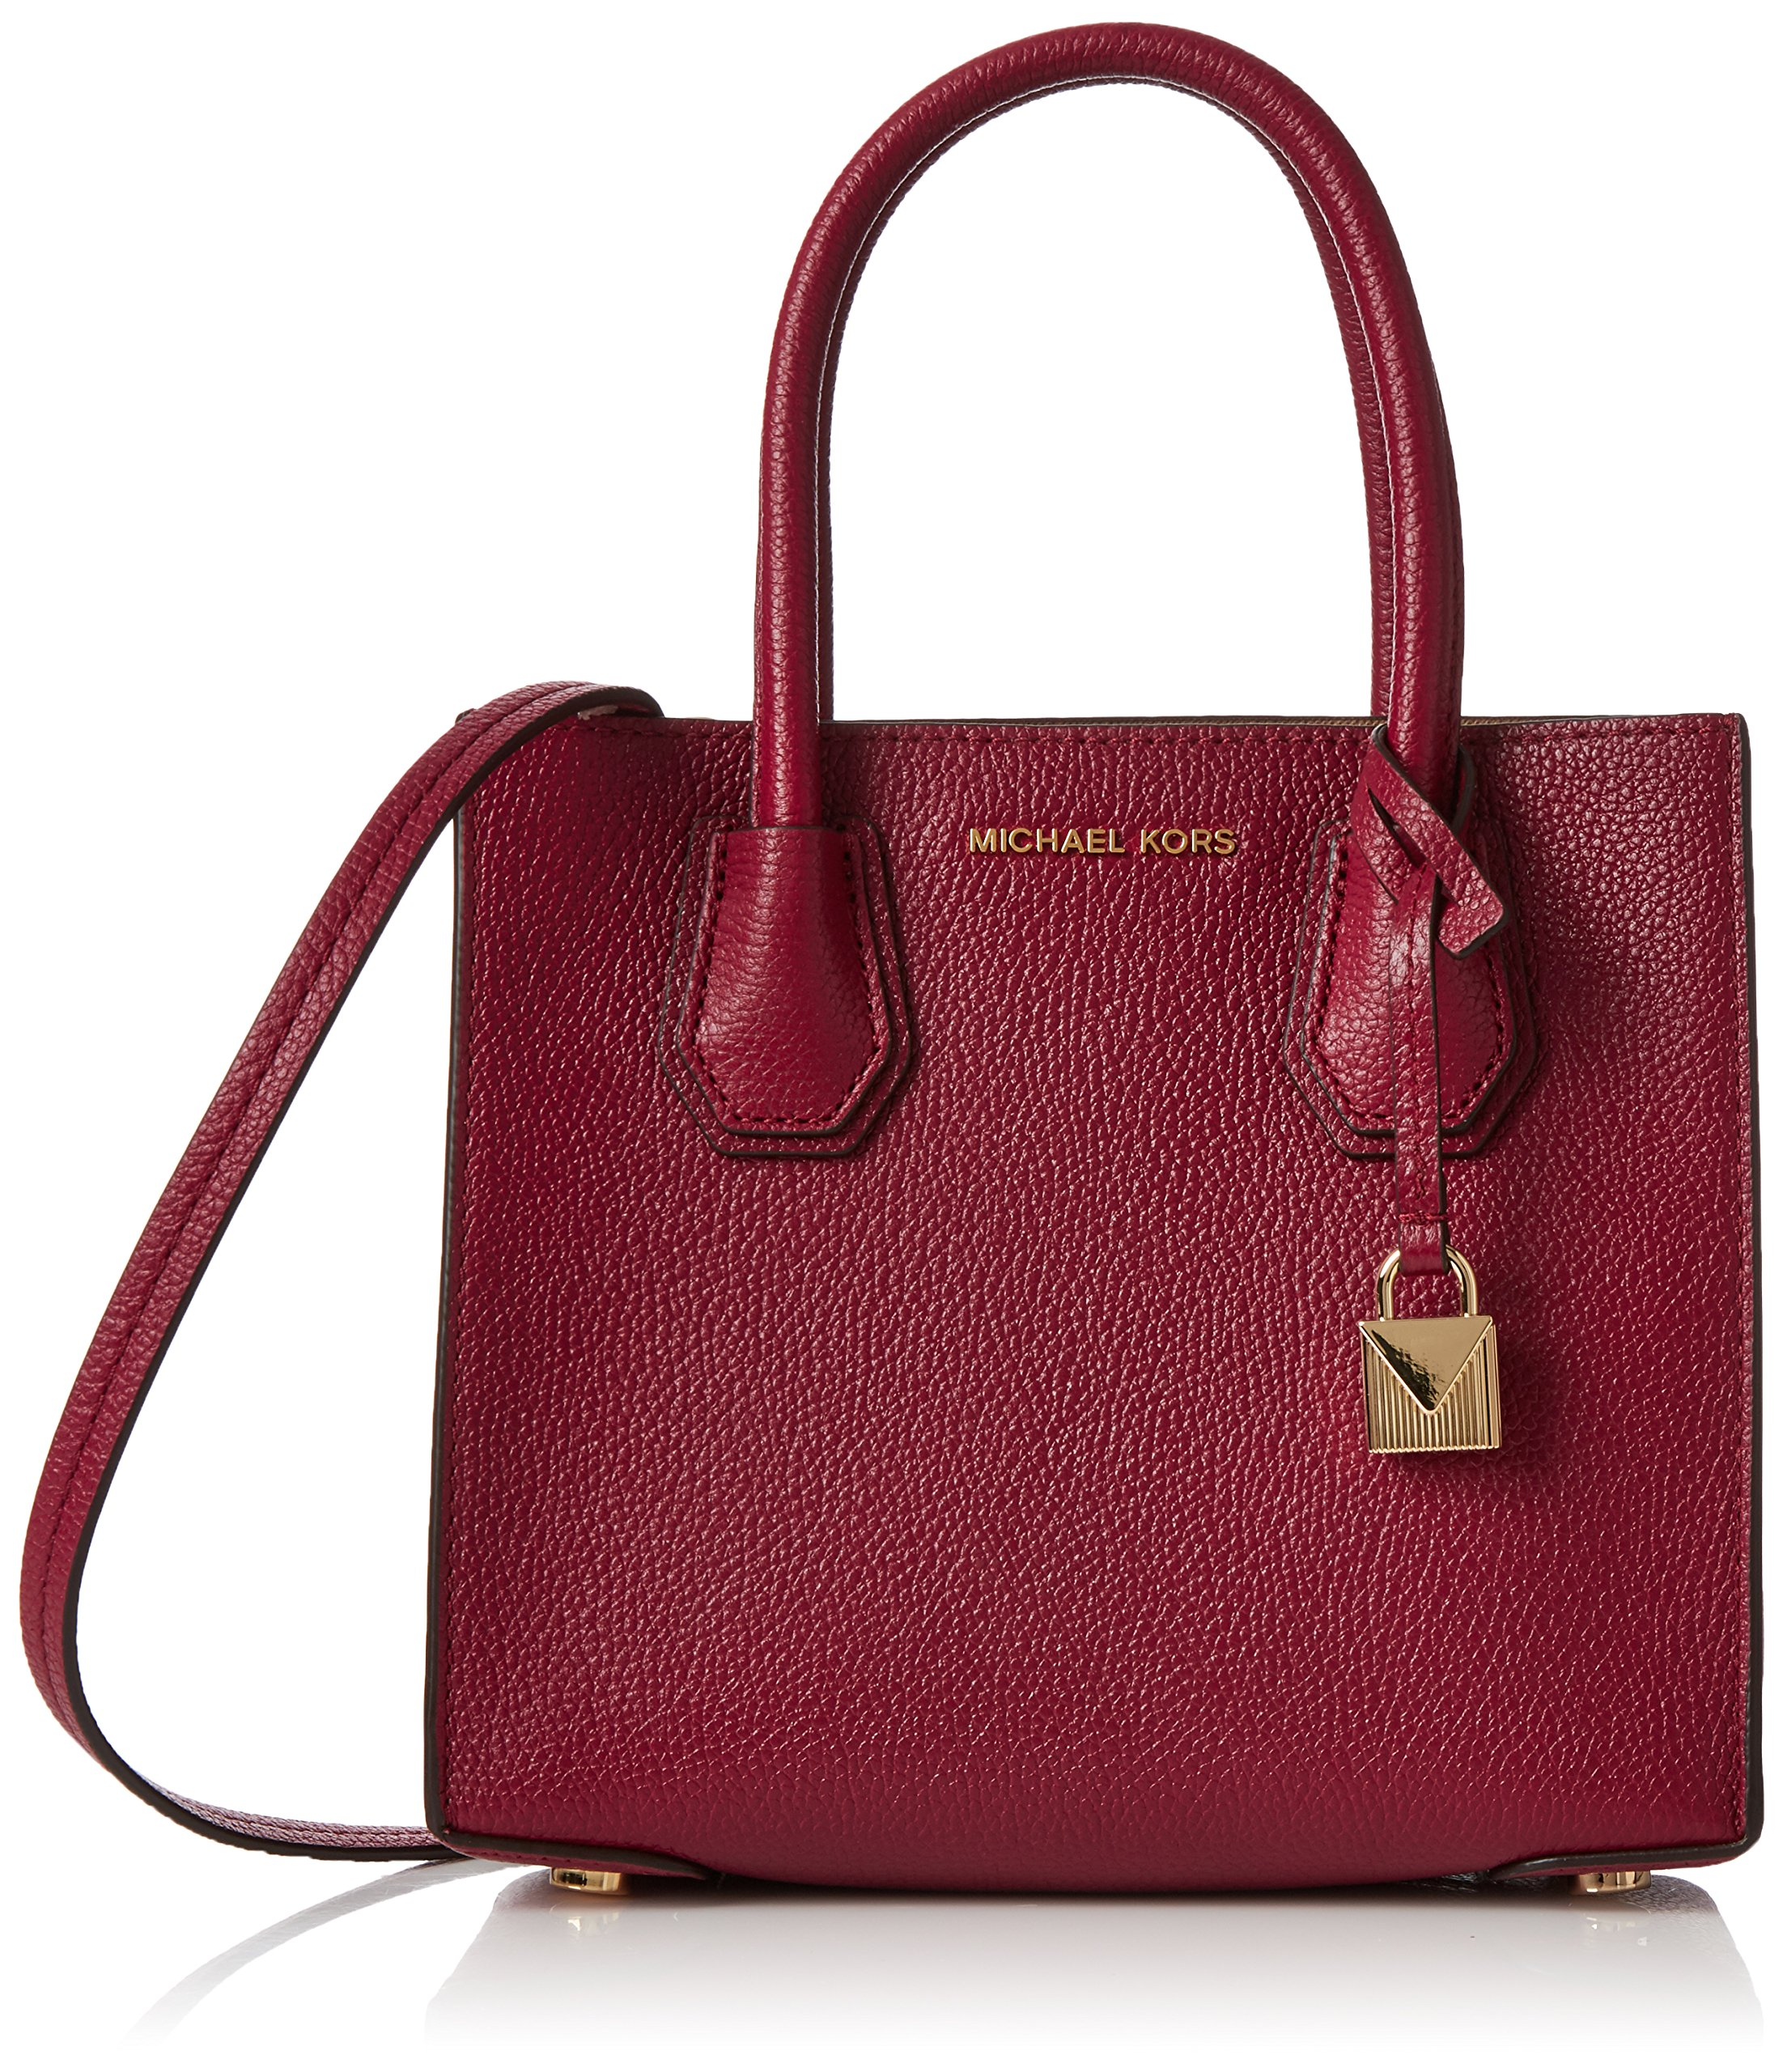 MICHAEL Michael Kors Women's Medium Mercer Messenger Bag, Mulberry, One Size by MICHAEL Michael Kors